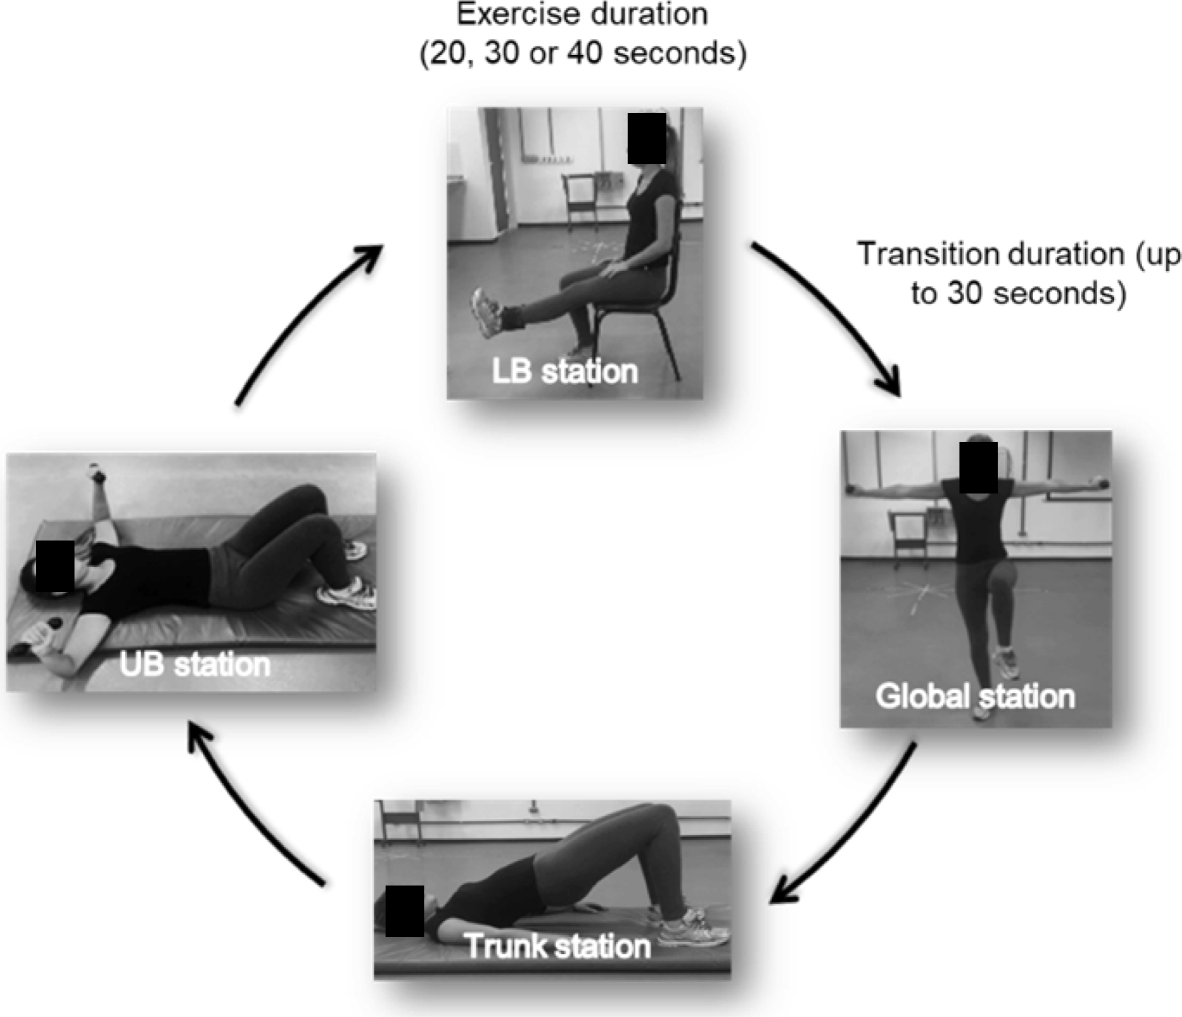 Influence Of A Periodized Circuit Training Protocol On Intermuscular